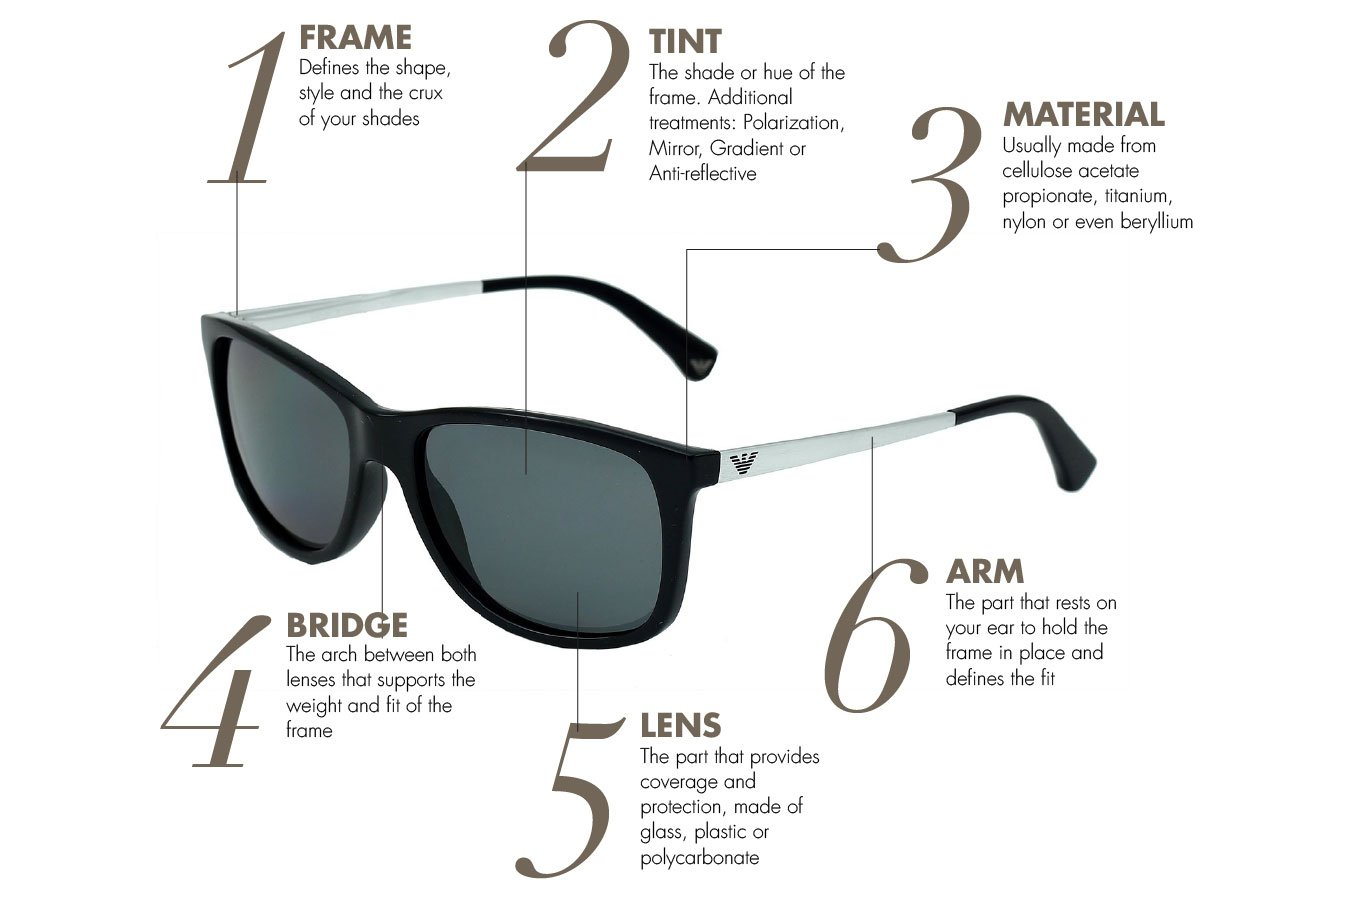 Amazon.in: The sunglasses guide: Clothing & Accessories